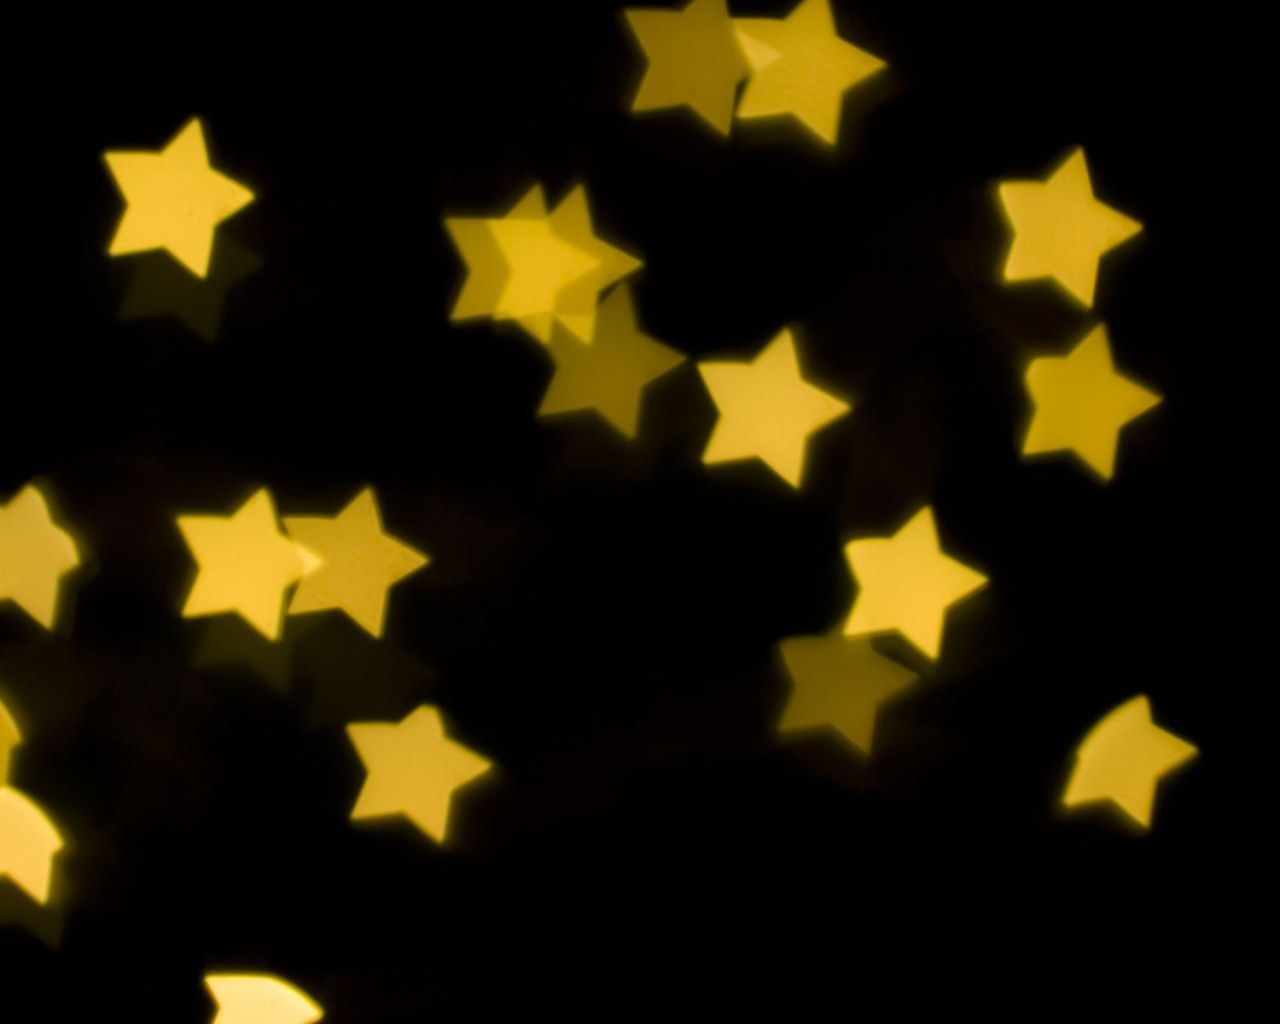 Aesthetic yellow stars wallpapers • Wallpapers For You HD Wallpapers For Desktop & Mobile